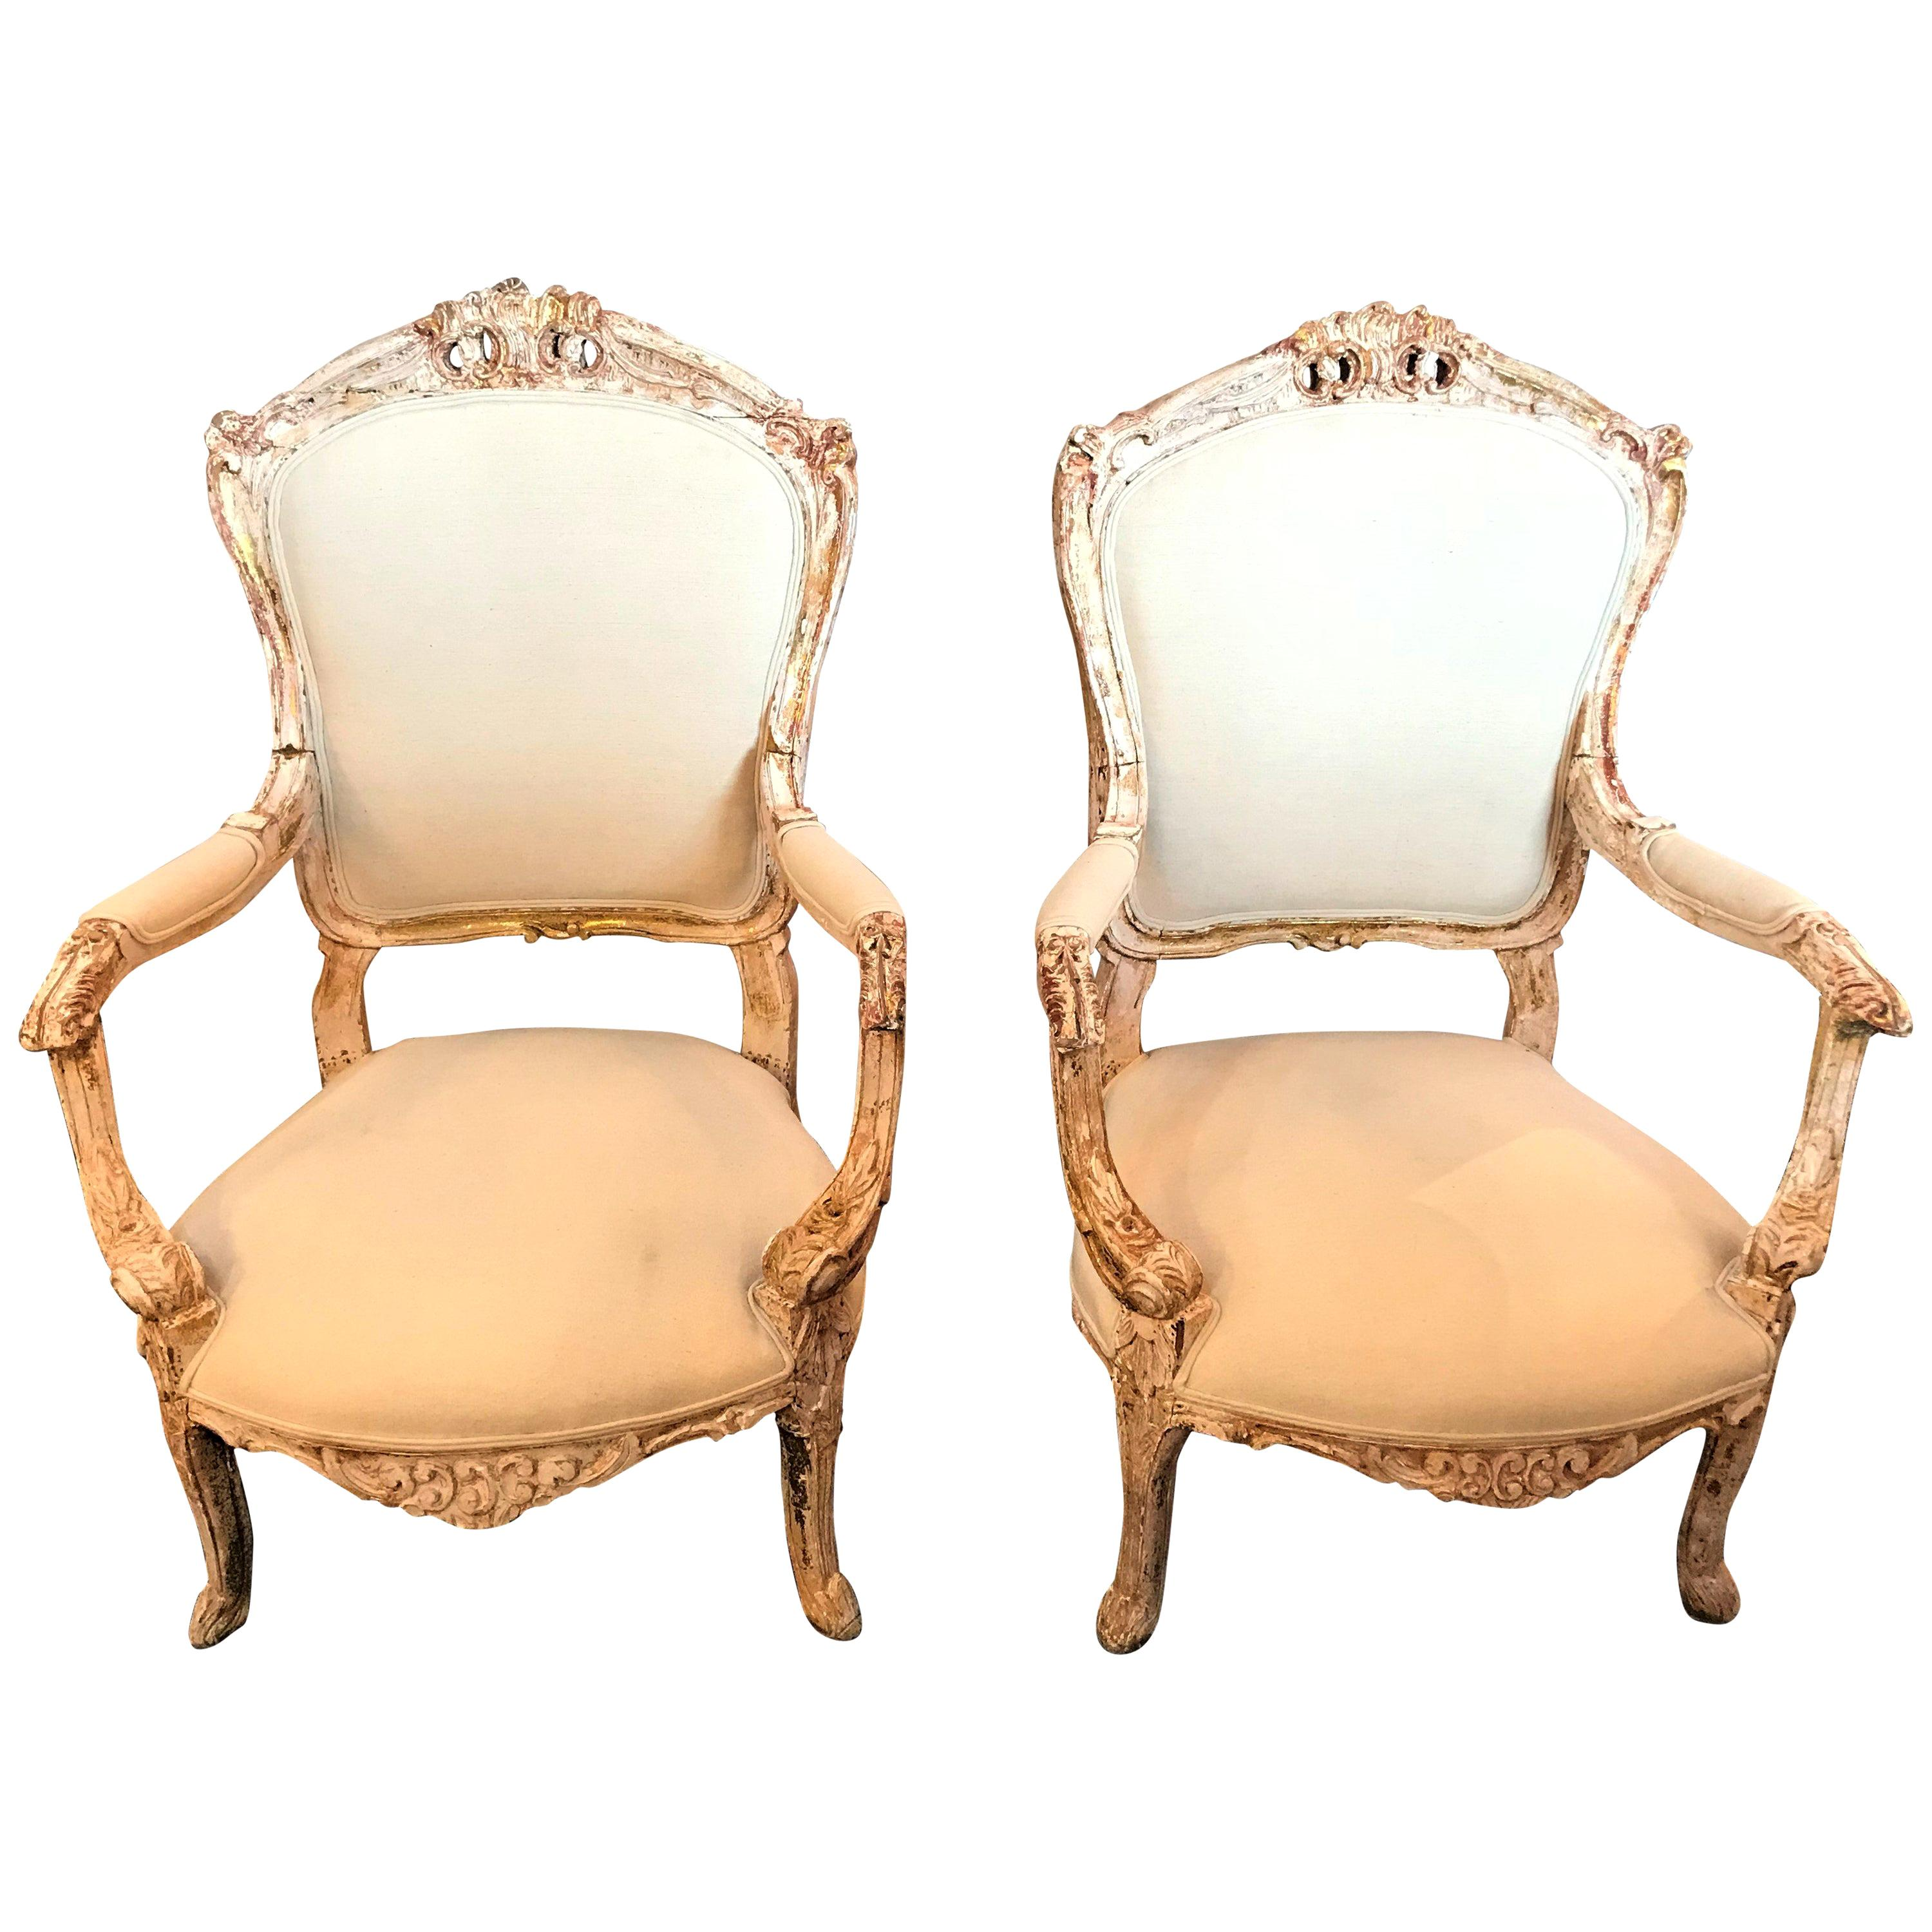 Pair of Antique Louis XV Style Armchairs in Painted Distressed Frames